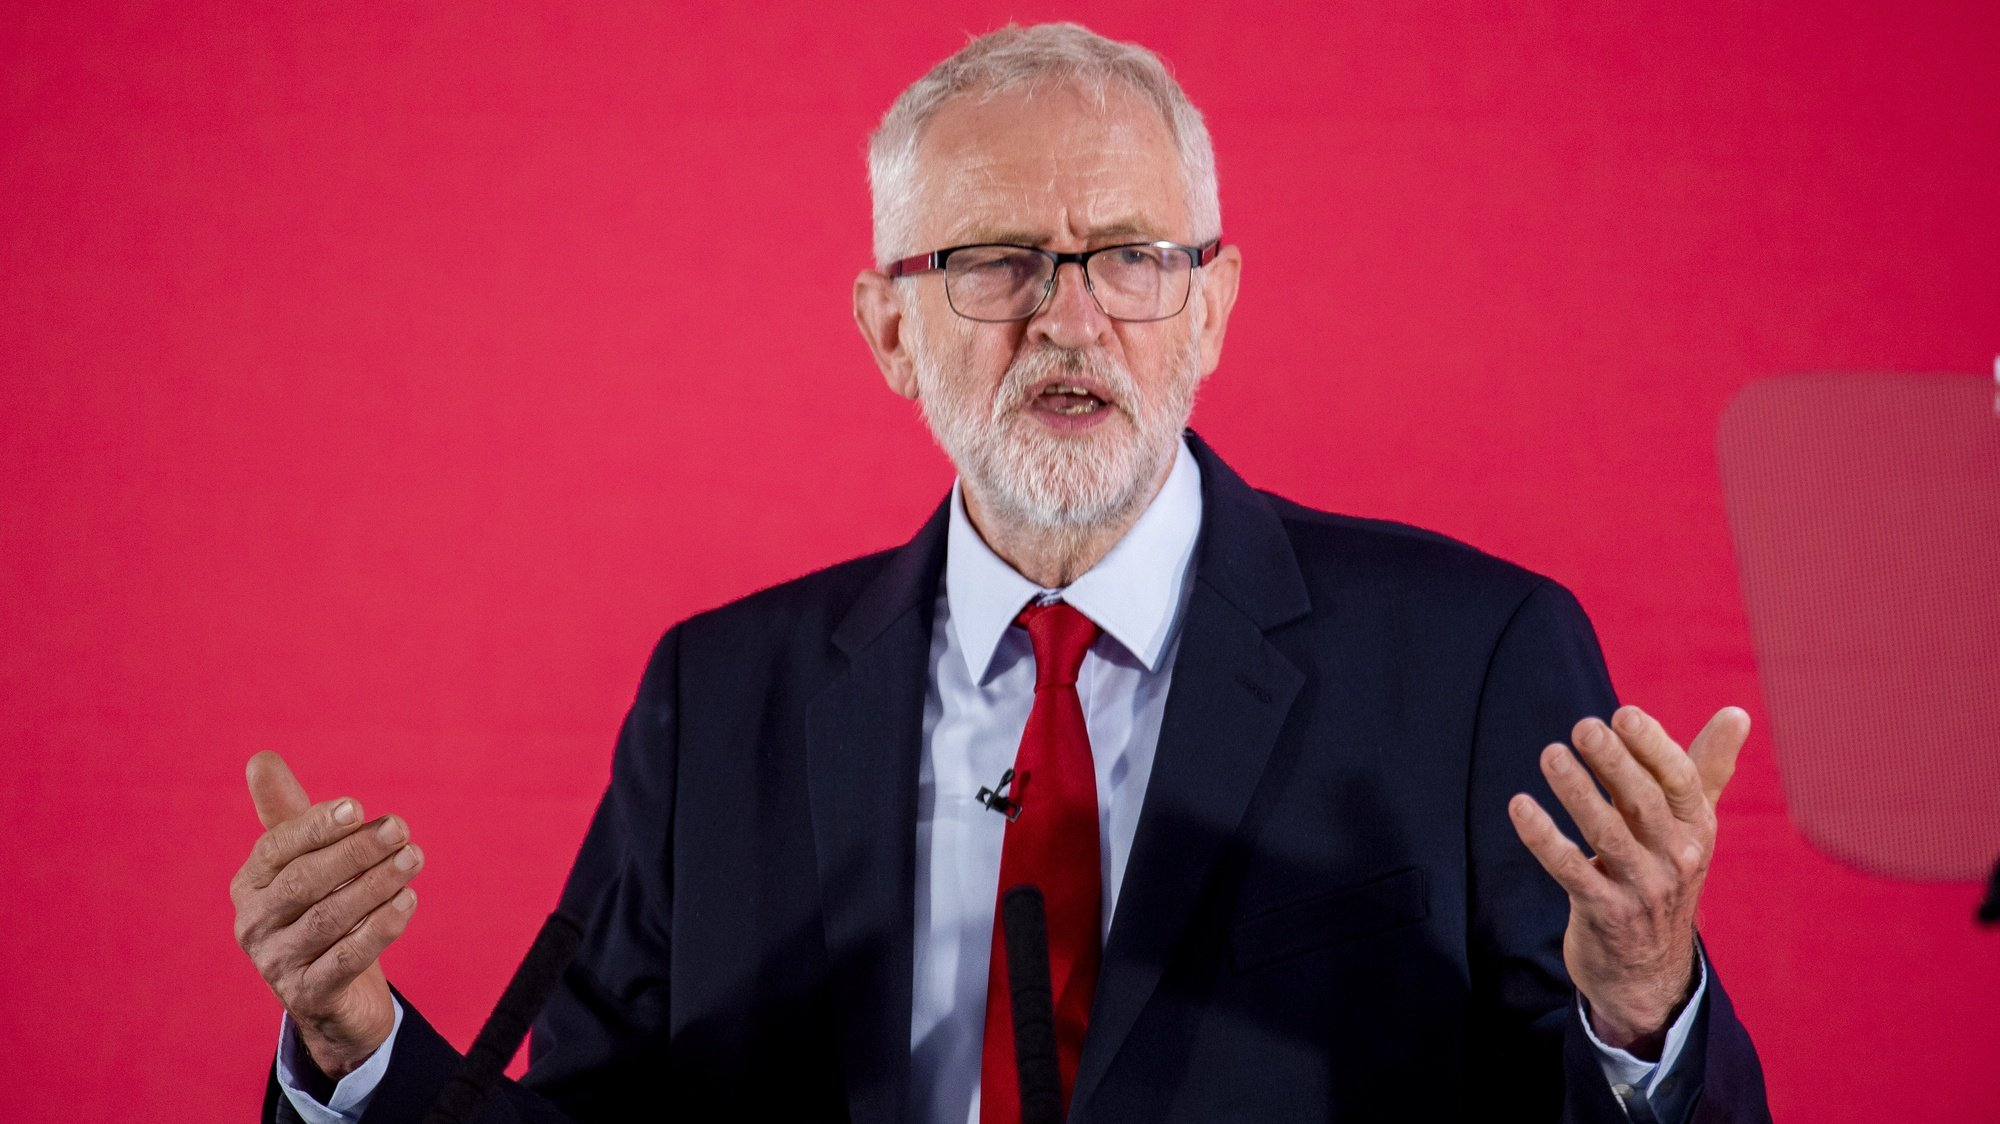 epa08783032 (FILE) -Than Leader of the Labour Party  Jeremy Corbyn makes a keynote speech on the day before Parliament returns, Manchester, Britain, 02 September 2019 (reissued 29 October 2020). According to reports, Jeremy Corbyn has been suspended from the parliamentary Labour due to pending investigation and comments about antisemitism in the Labour Party.  EPA/PETER POWELL . *** Local Caption *** 55822933